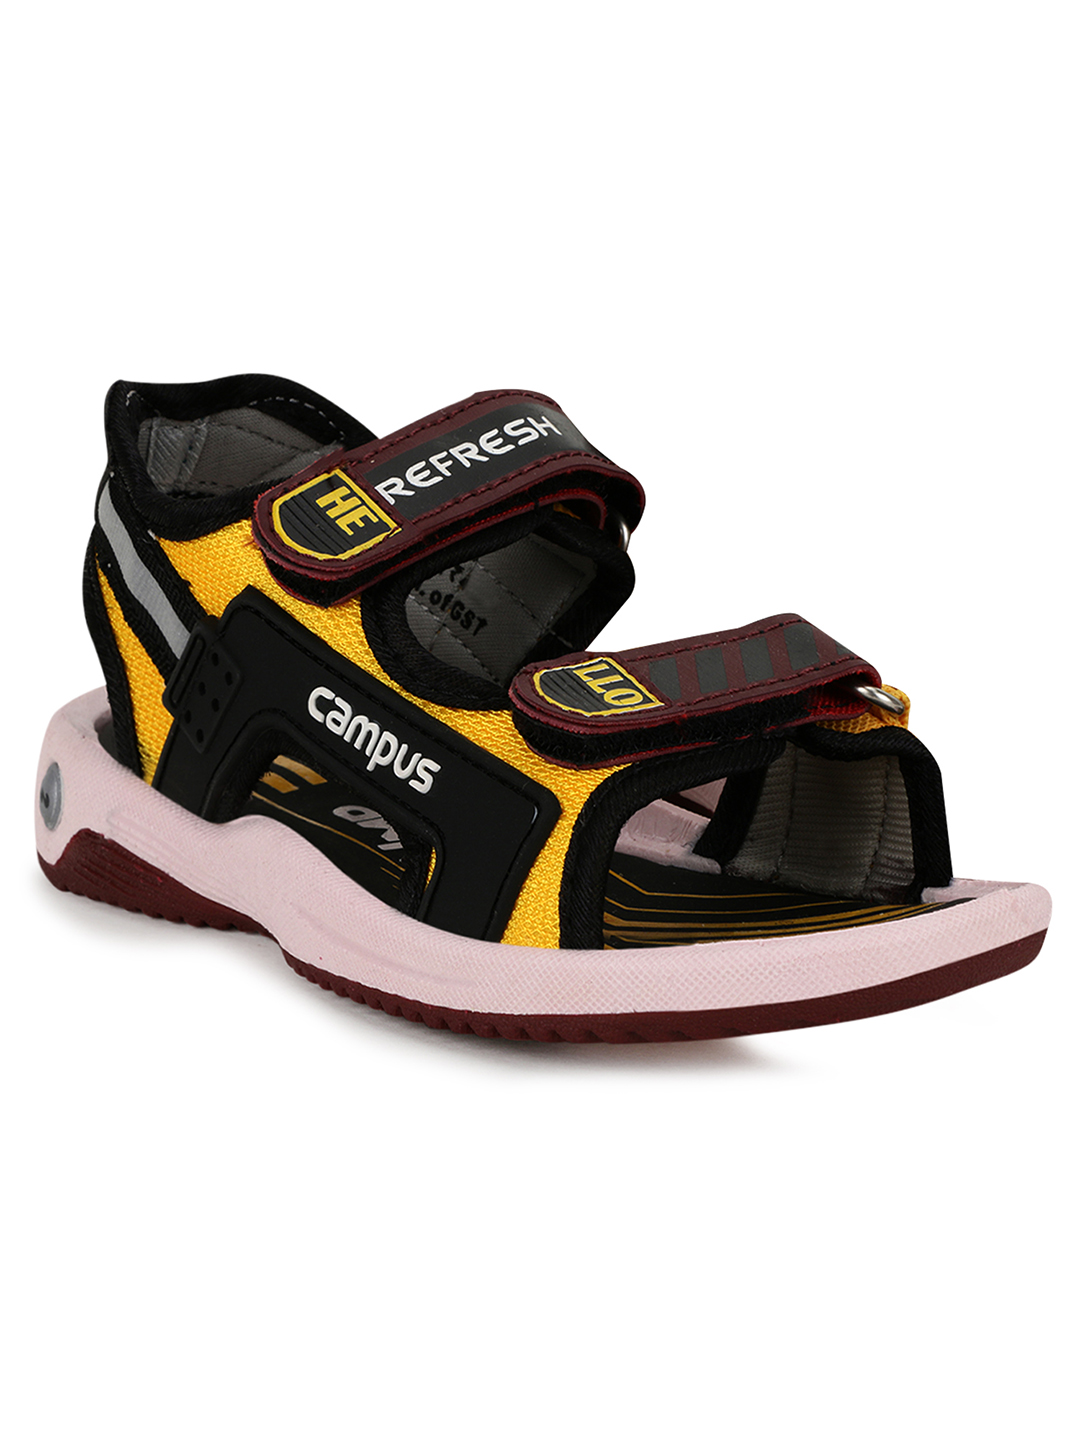 Campus Shoes | Yellow Sandals